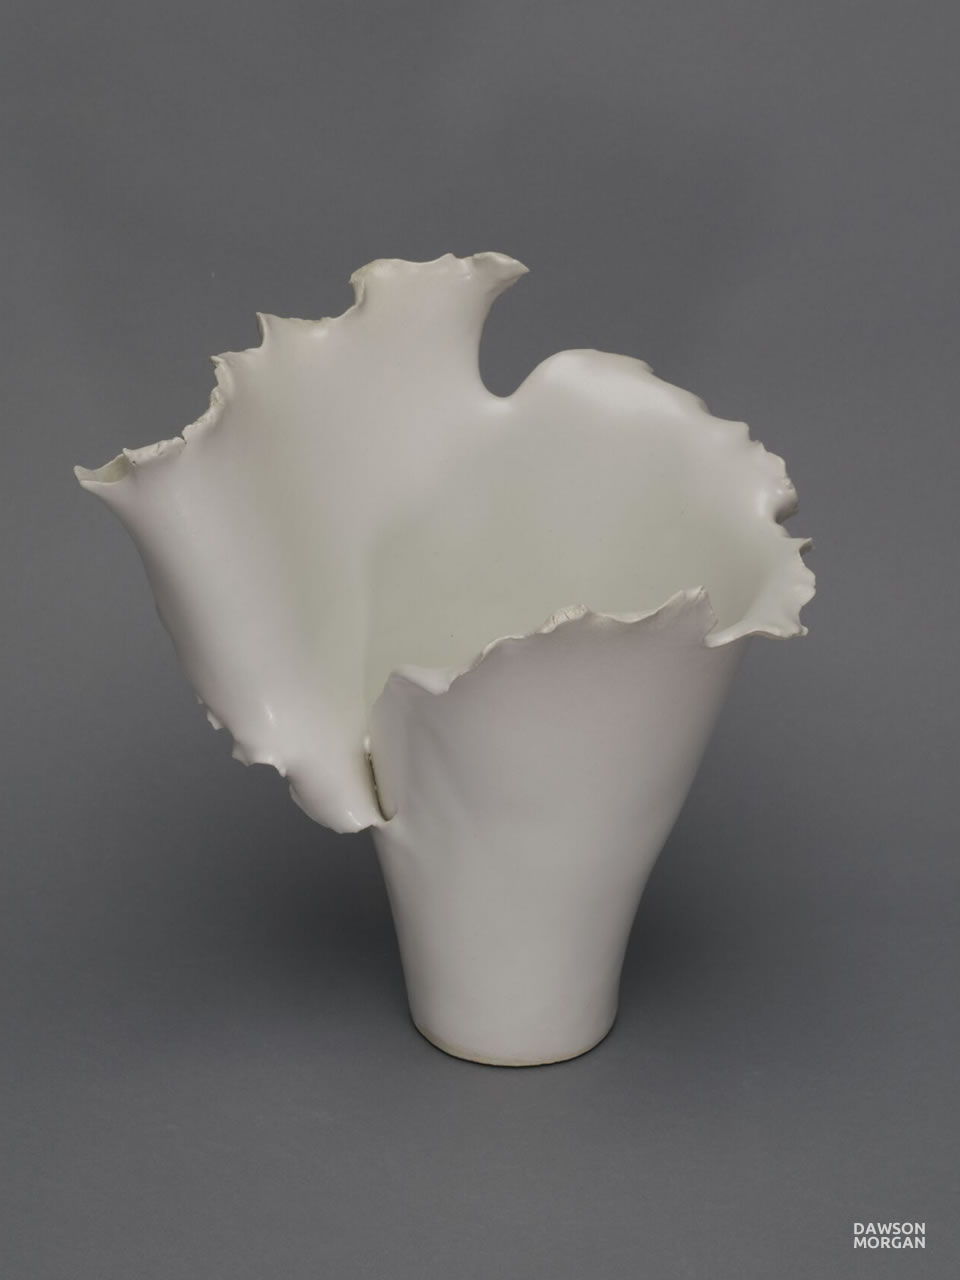 Dawson Morgan White Ceramic Vase Medium